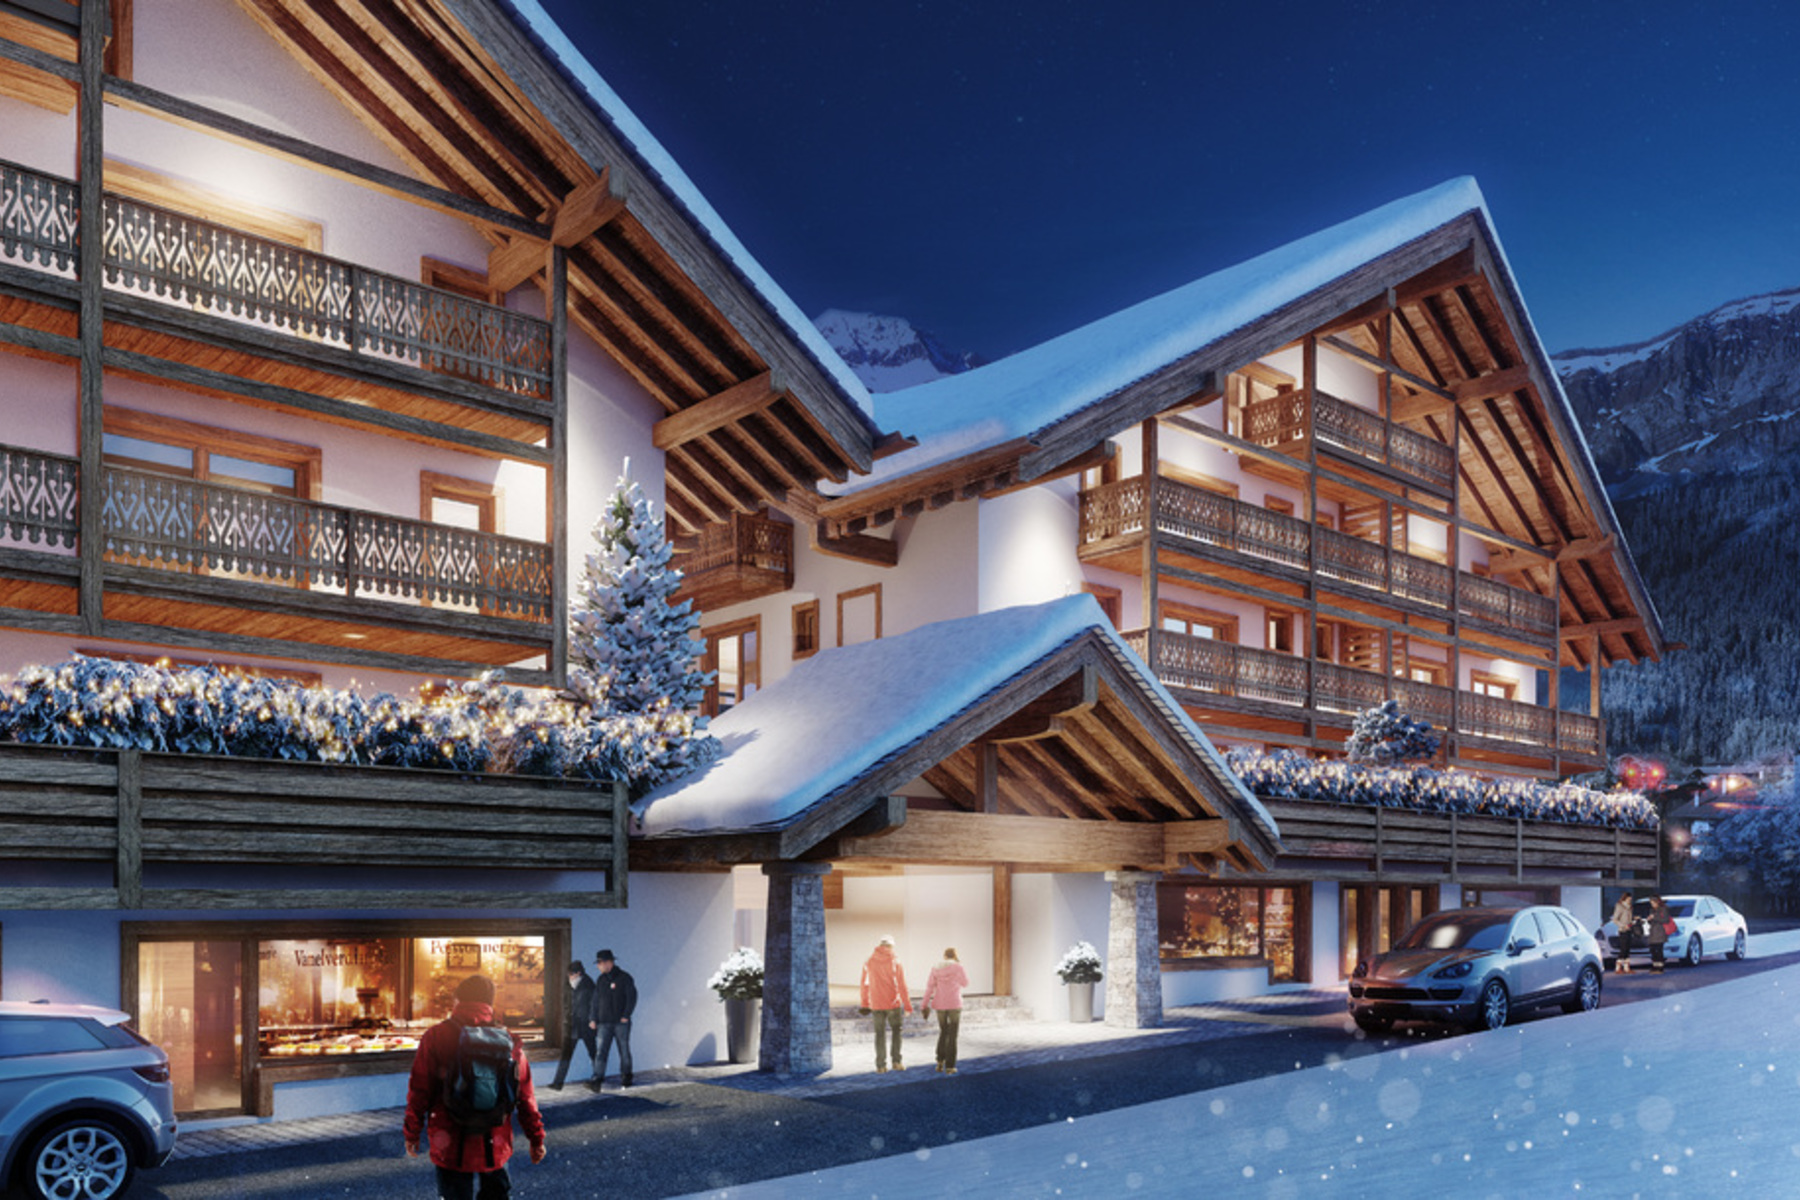 複式單位 為 出售 在 Résidence Le Montagnier - Luxury duplex with stunning views Champéry Champery, 瓦萊州, 1874 瑞士